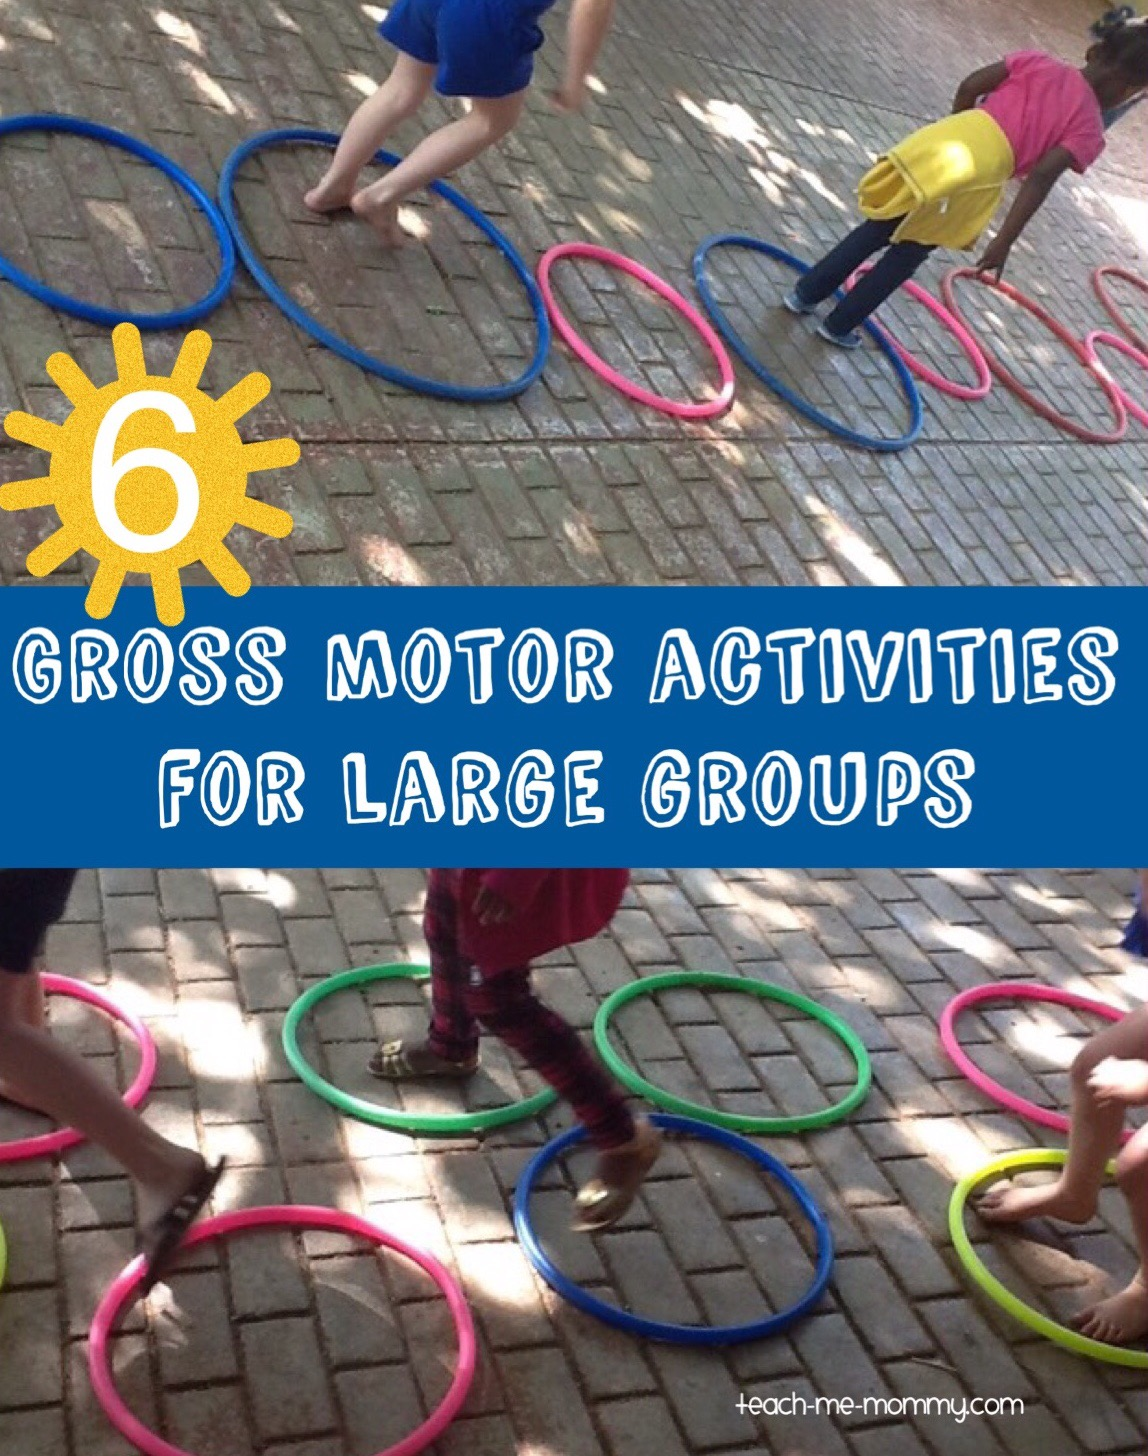 6 gross motor activities for large groups teach me mommy